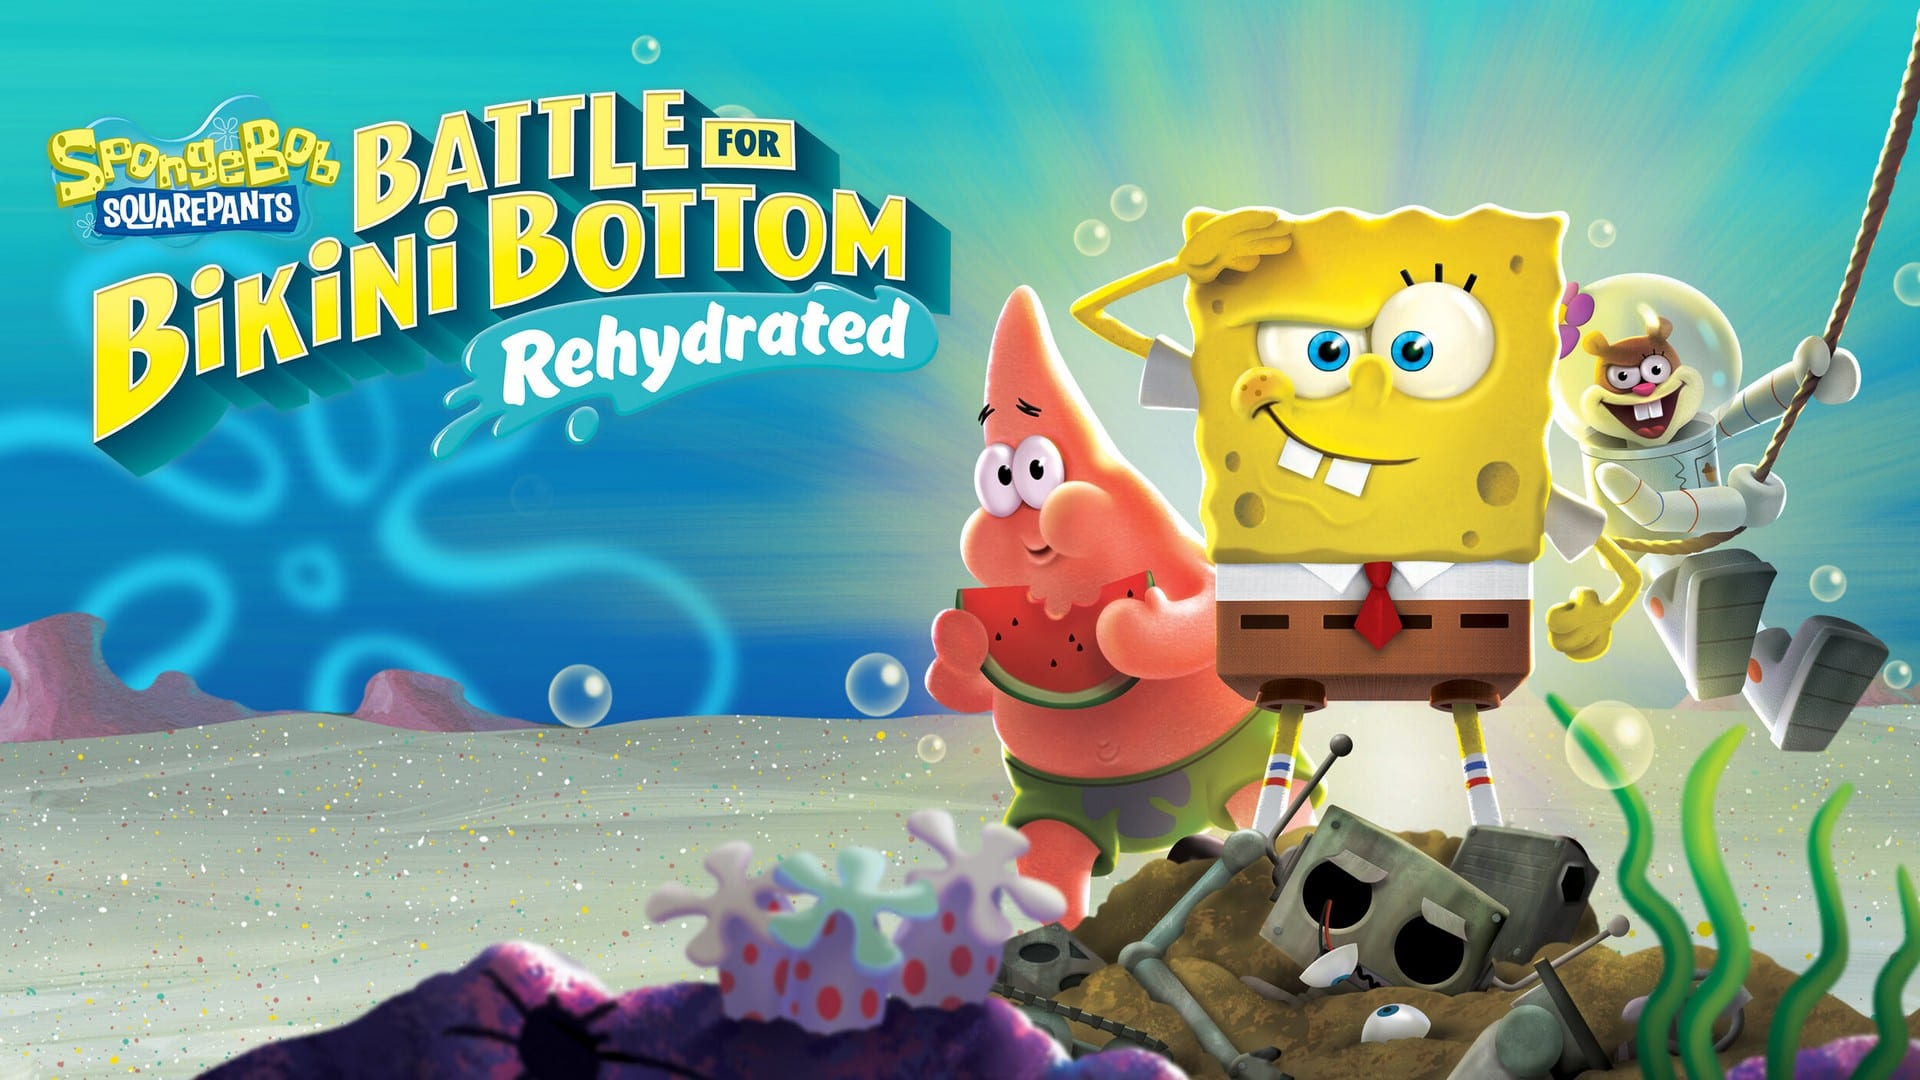 The Accolades Trailer For Spongebob Squarepants: Battle For Bikini Bottom – Rehydrated is Available Now